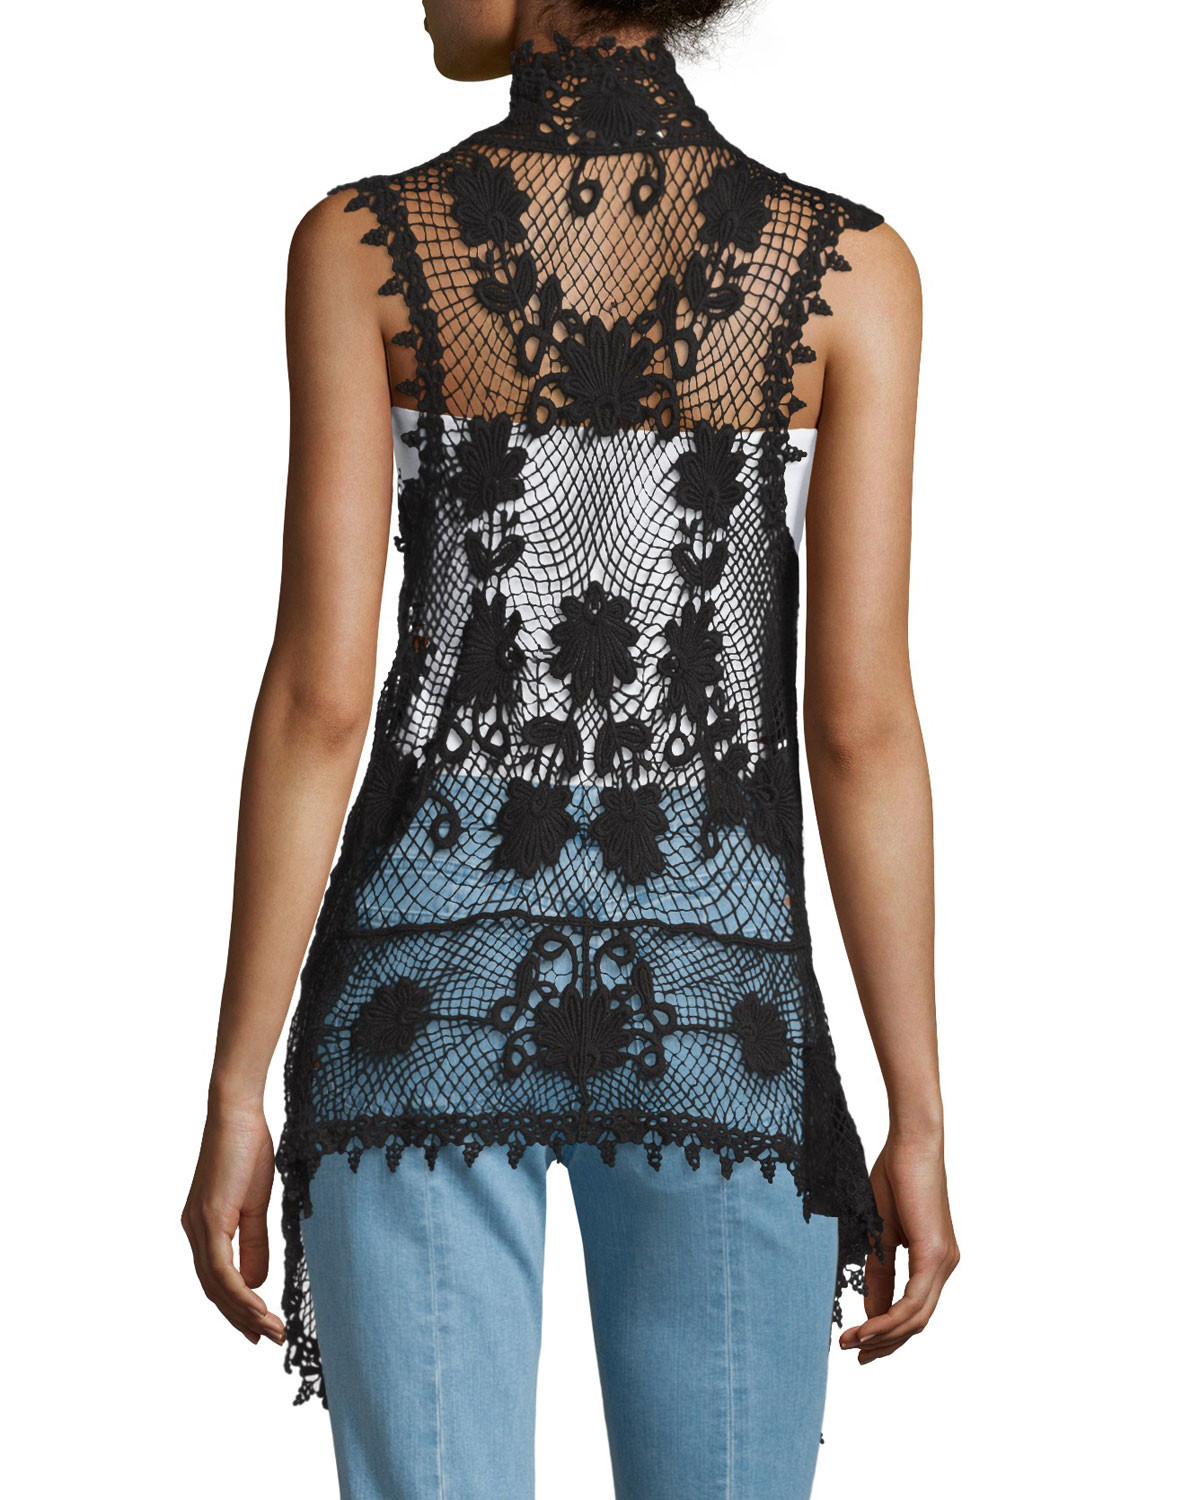 Lyst Liquid By Sioni Long Sleeveless Crochet Vest in Black